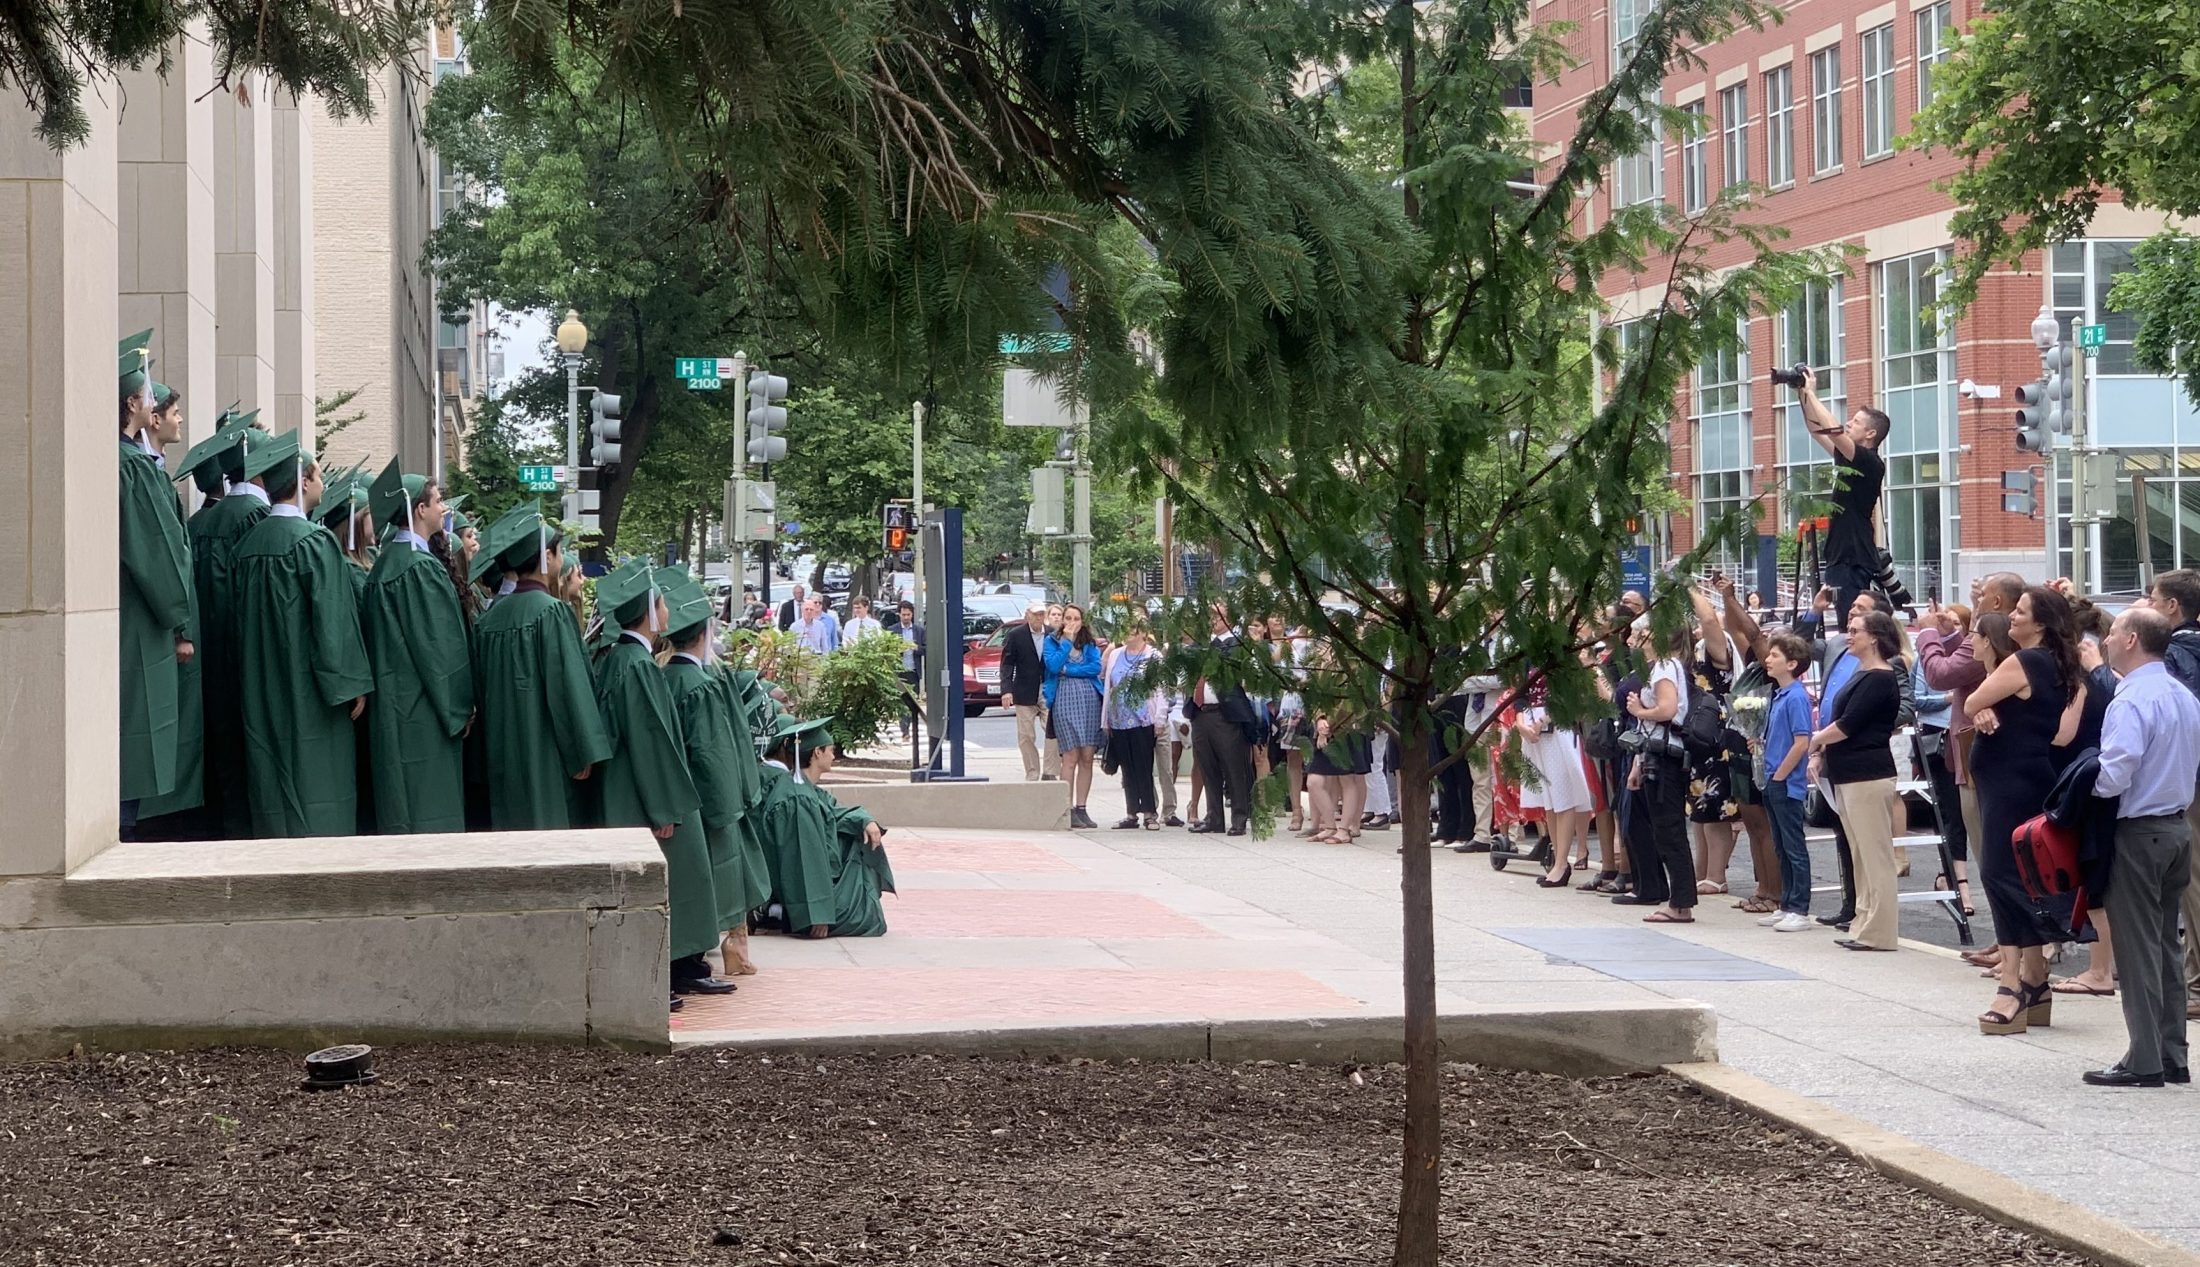 Graduating class of school where DC widow blog writer Marjorie Brimley delivered commencement address